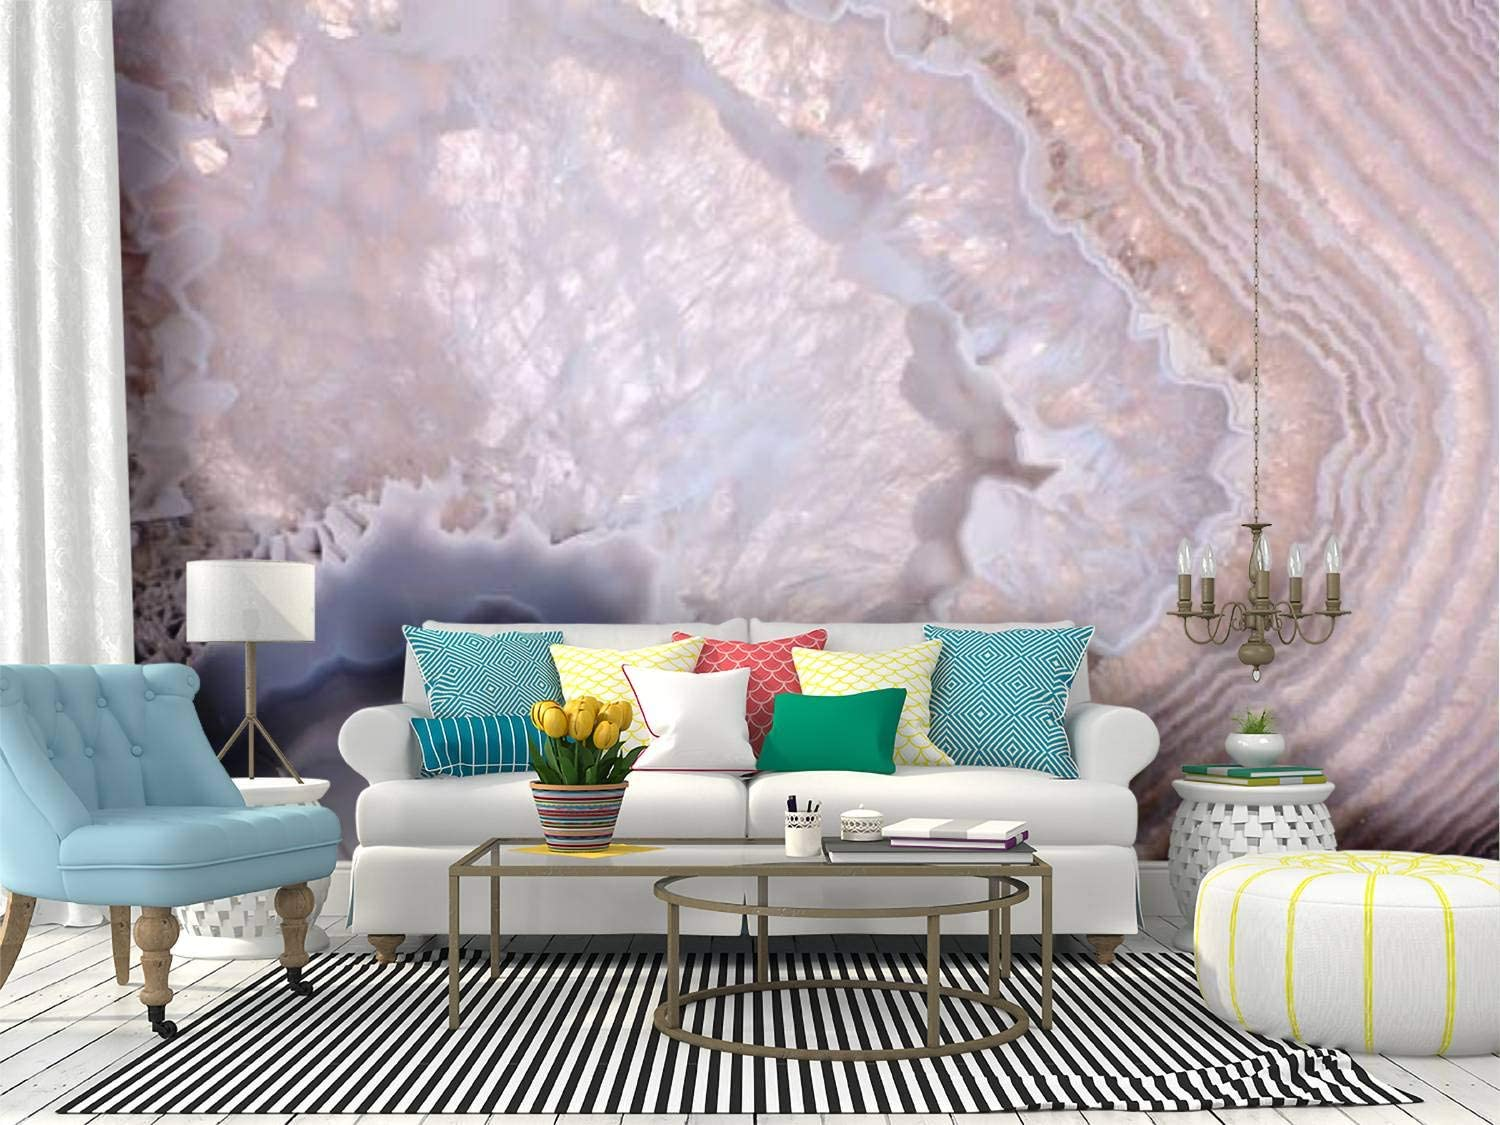 Amazon Com Wall Mural Waves In Grey Agate Structure Abstract Nature Backgrounds And Peel And Stick Wallpaper Self Adhesive Wallpaper Large Wall Sticker Removable Vinyl Film Roll Shelf Paper Home Decor Kitchen